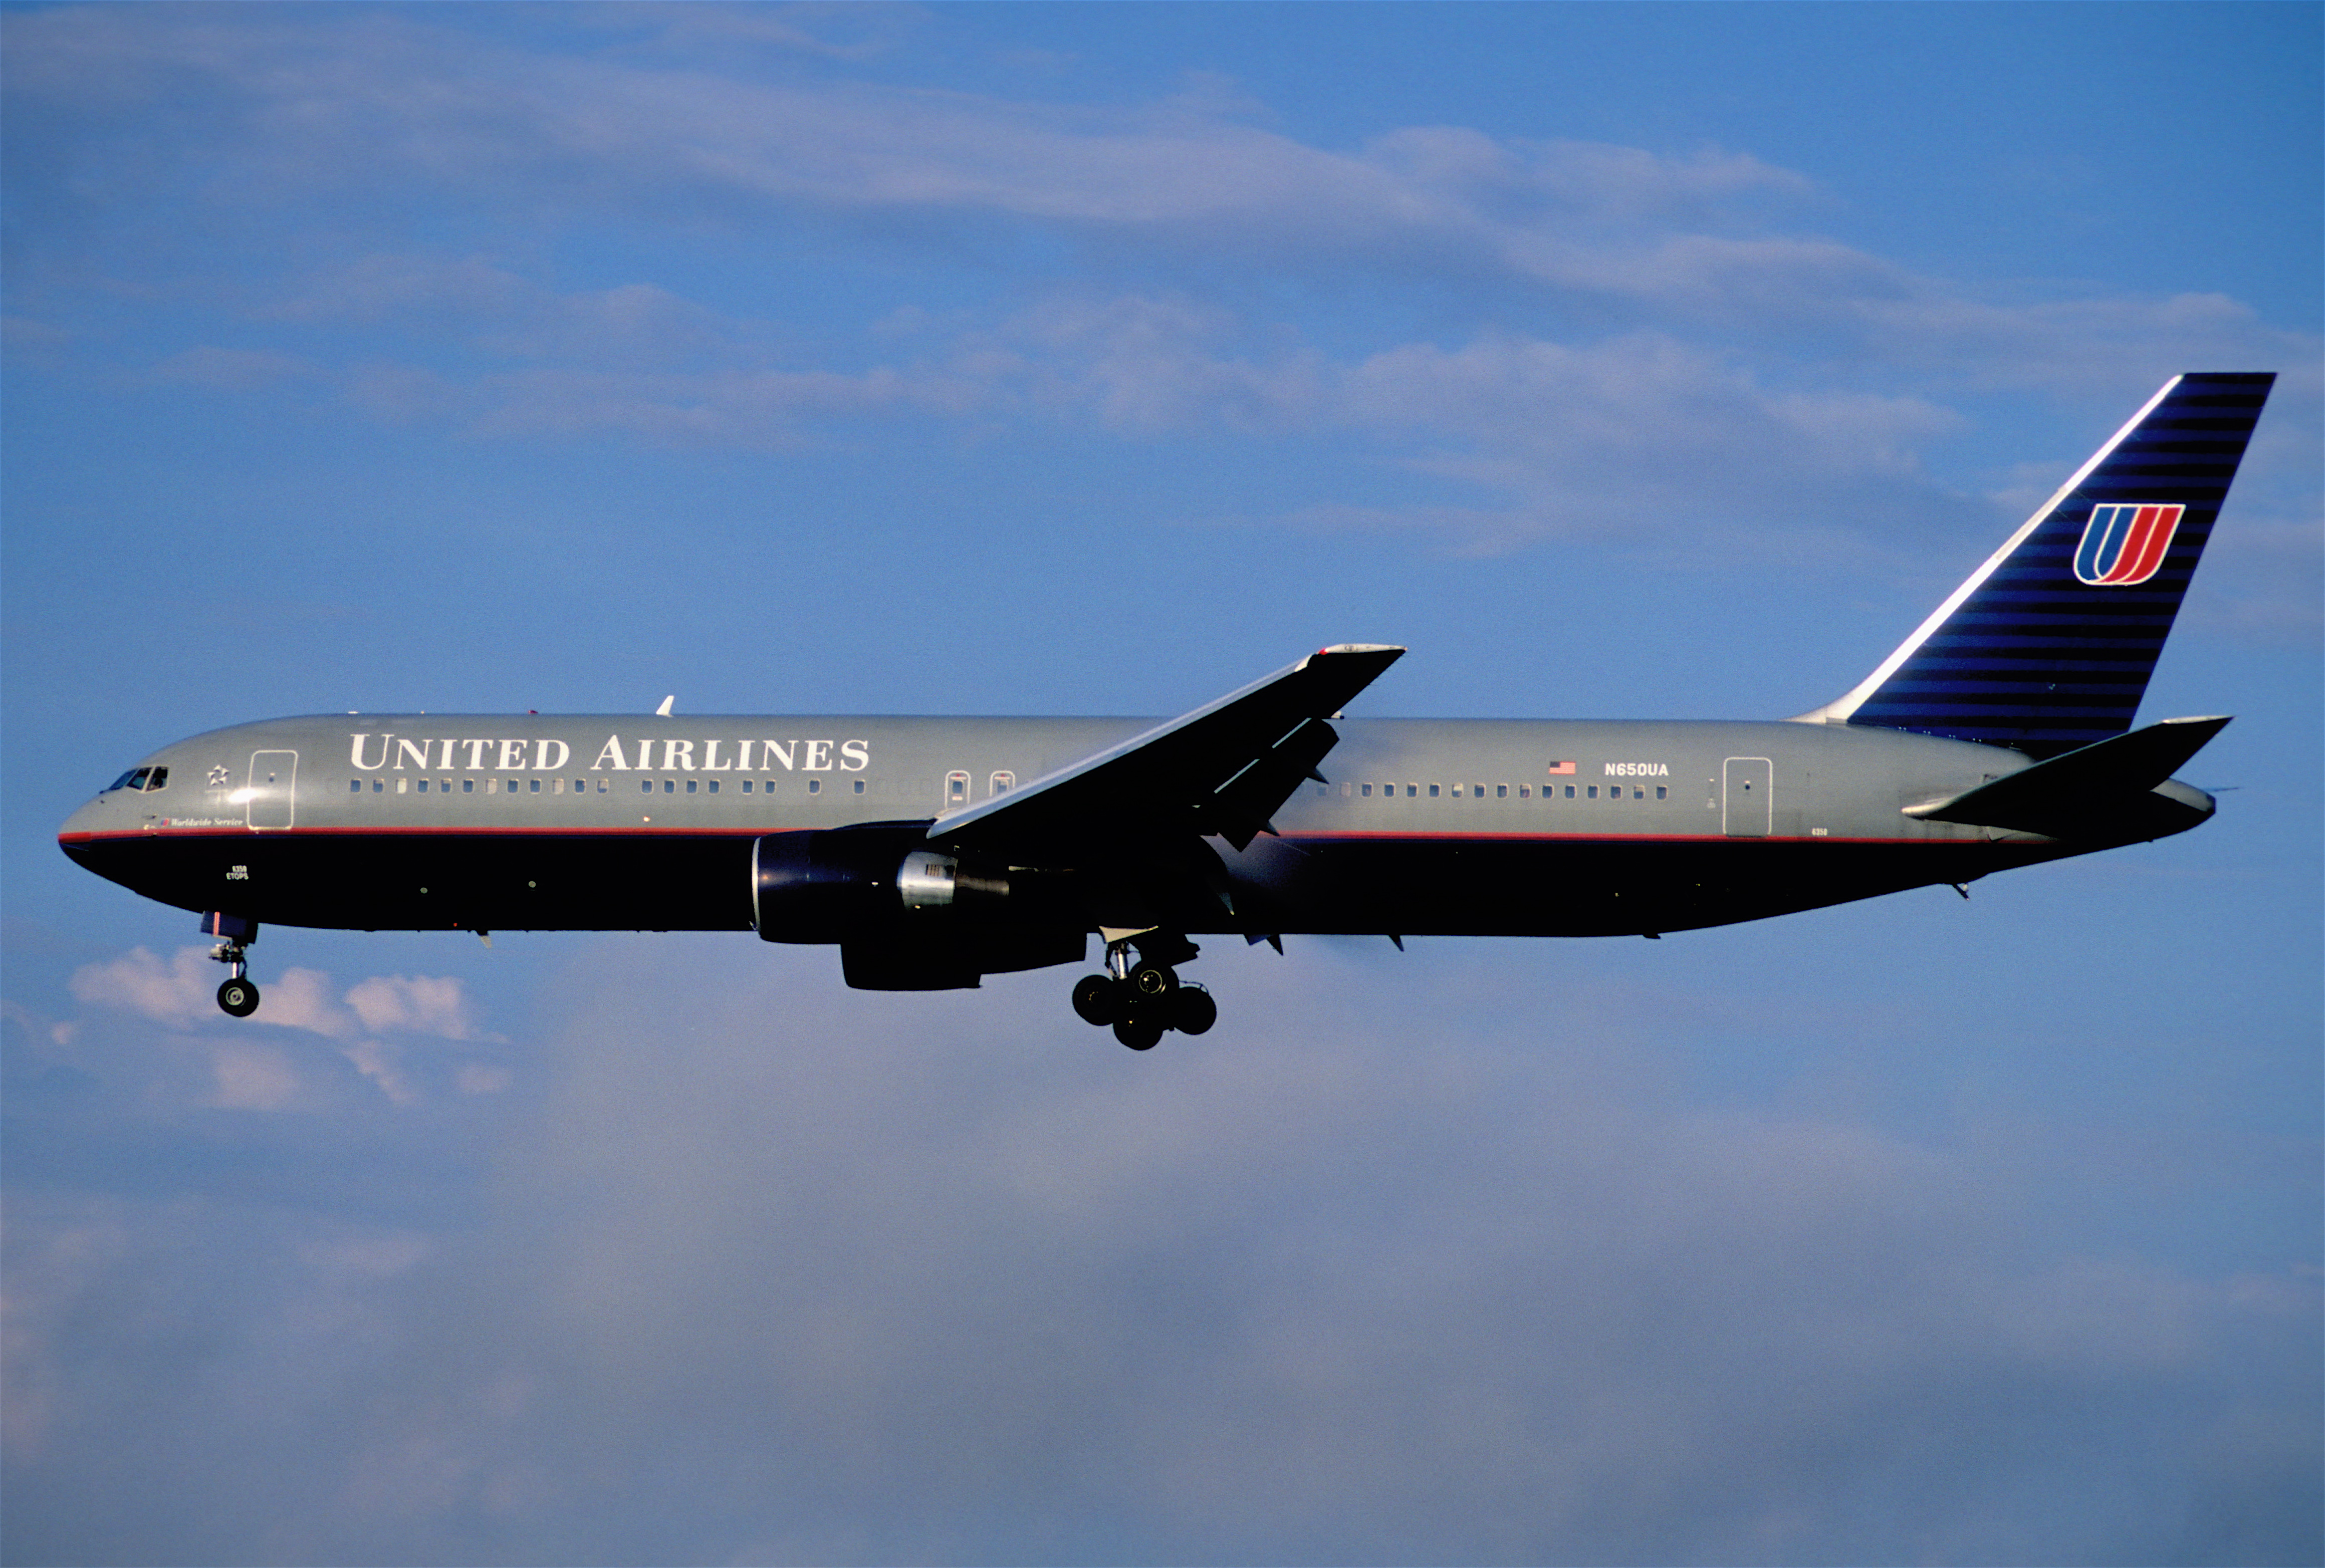 a description of the united airlines an american airline